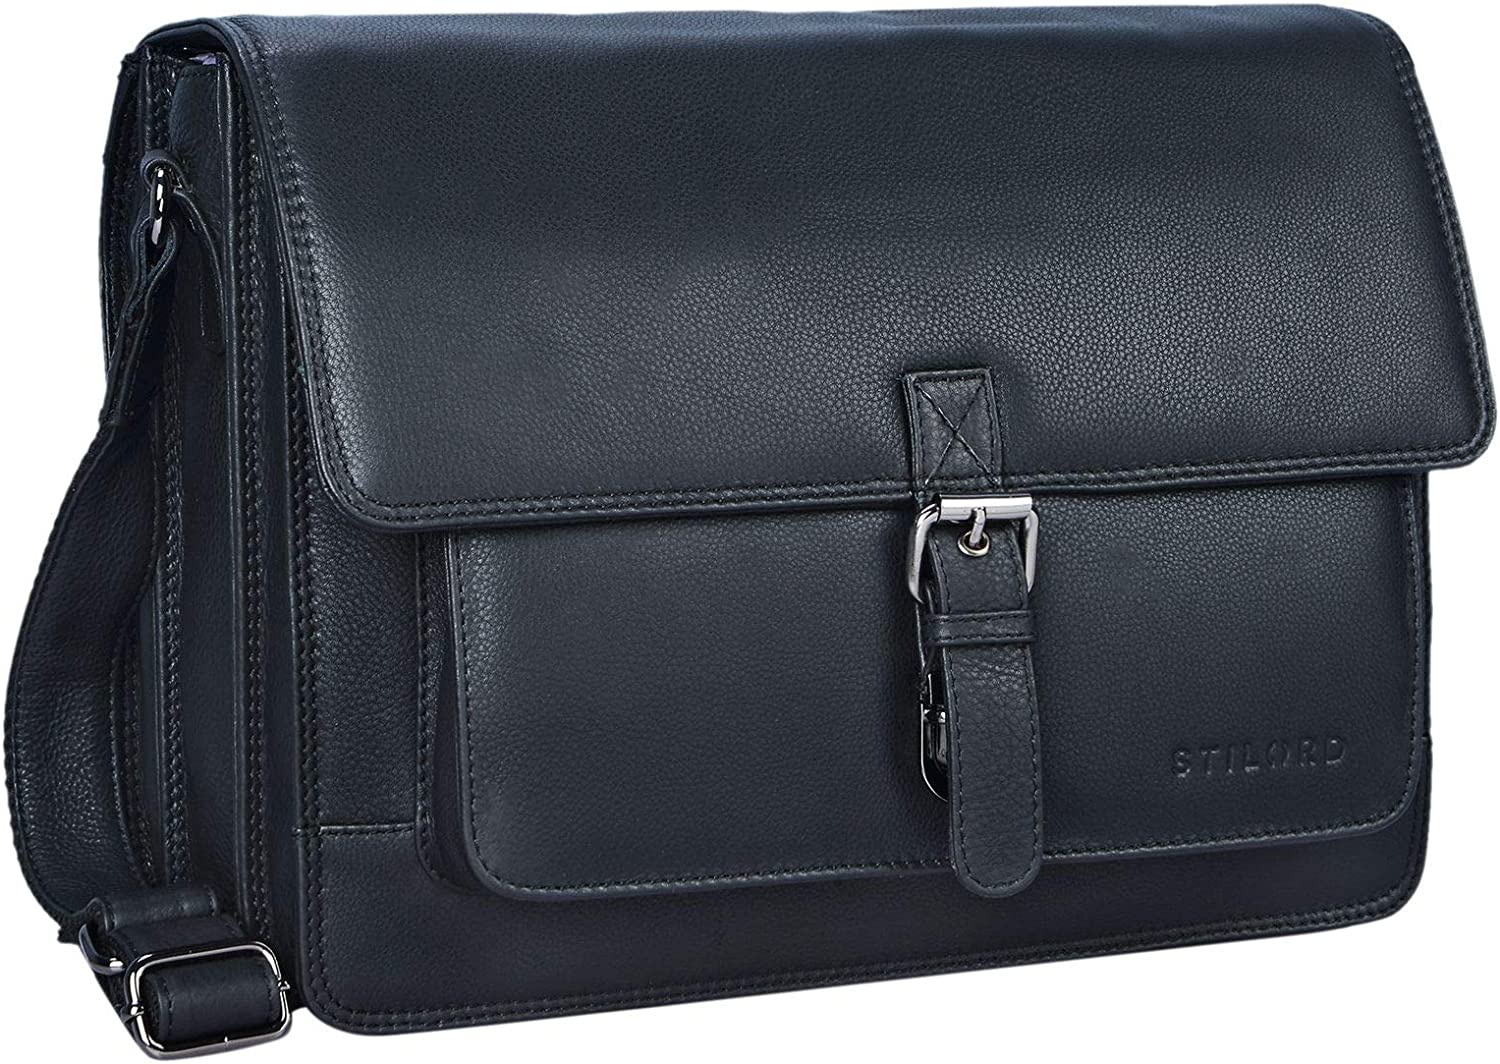 STILORD 'Romeo' Small Leather Briefcase for Men Women Vintage Business Bag for Work Office Suitable for A4 documents and 13,3 inches Laptops MacBooks, Colour:Kara - Cognac Black